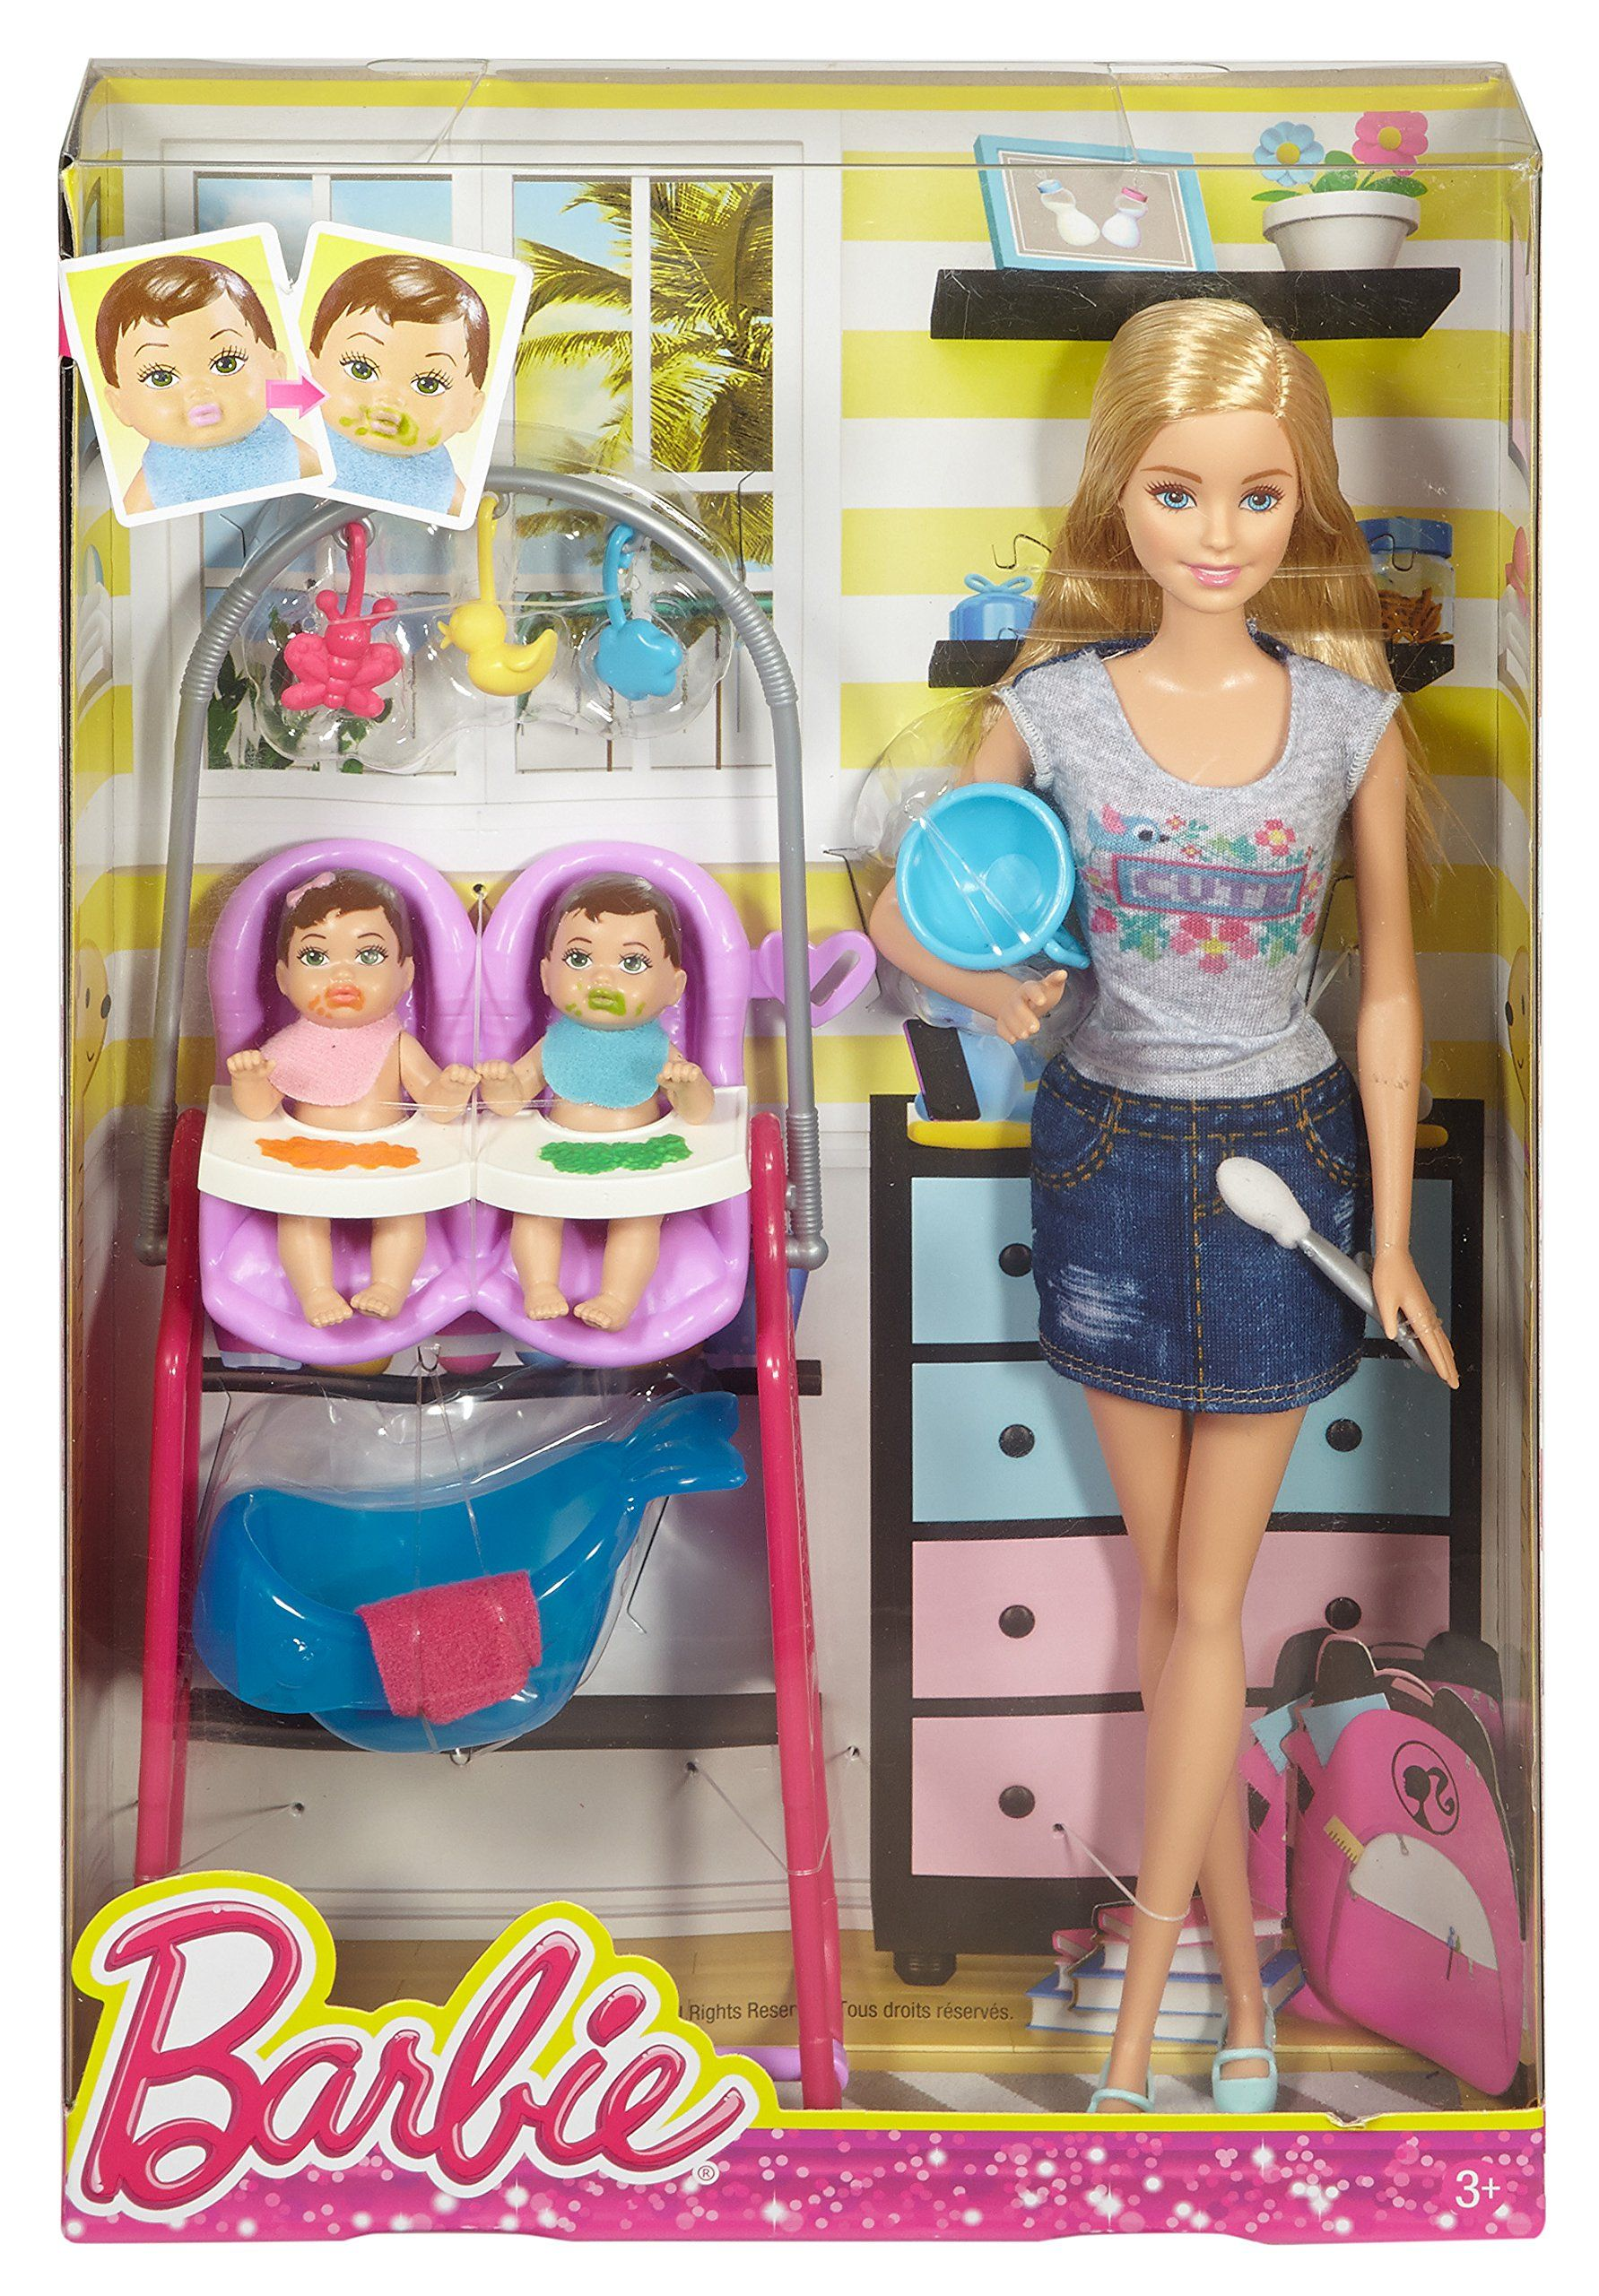 Amazon.com: Barbie Careers Twin Babysitter Doll and Playset: Toys ...